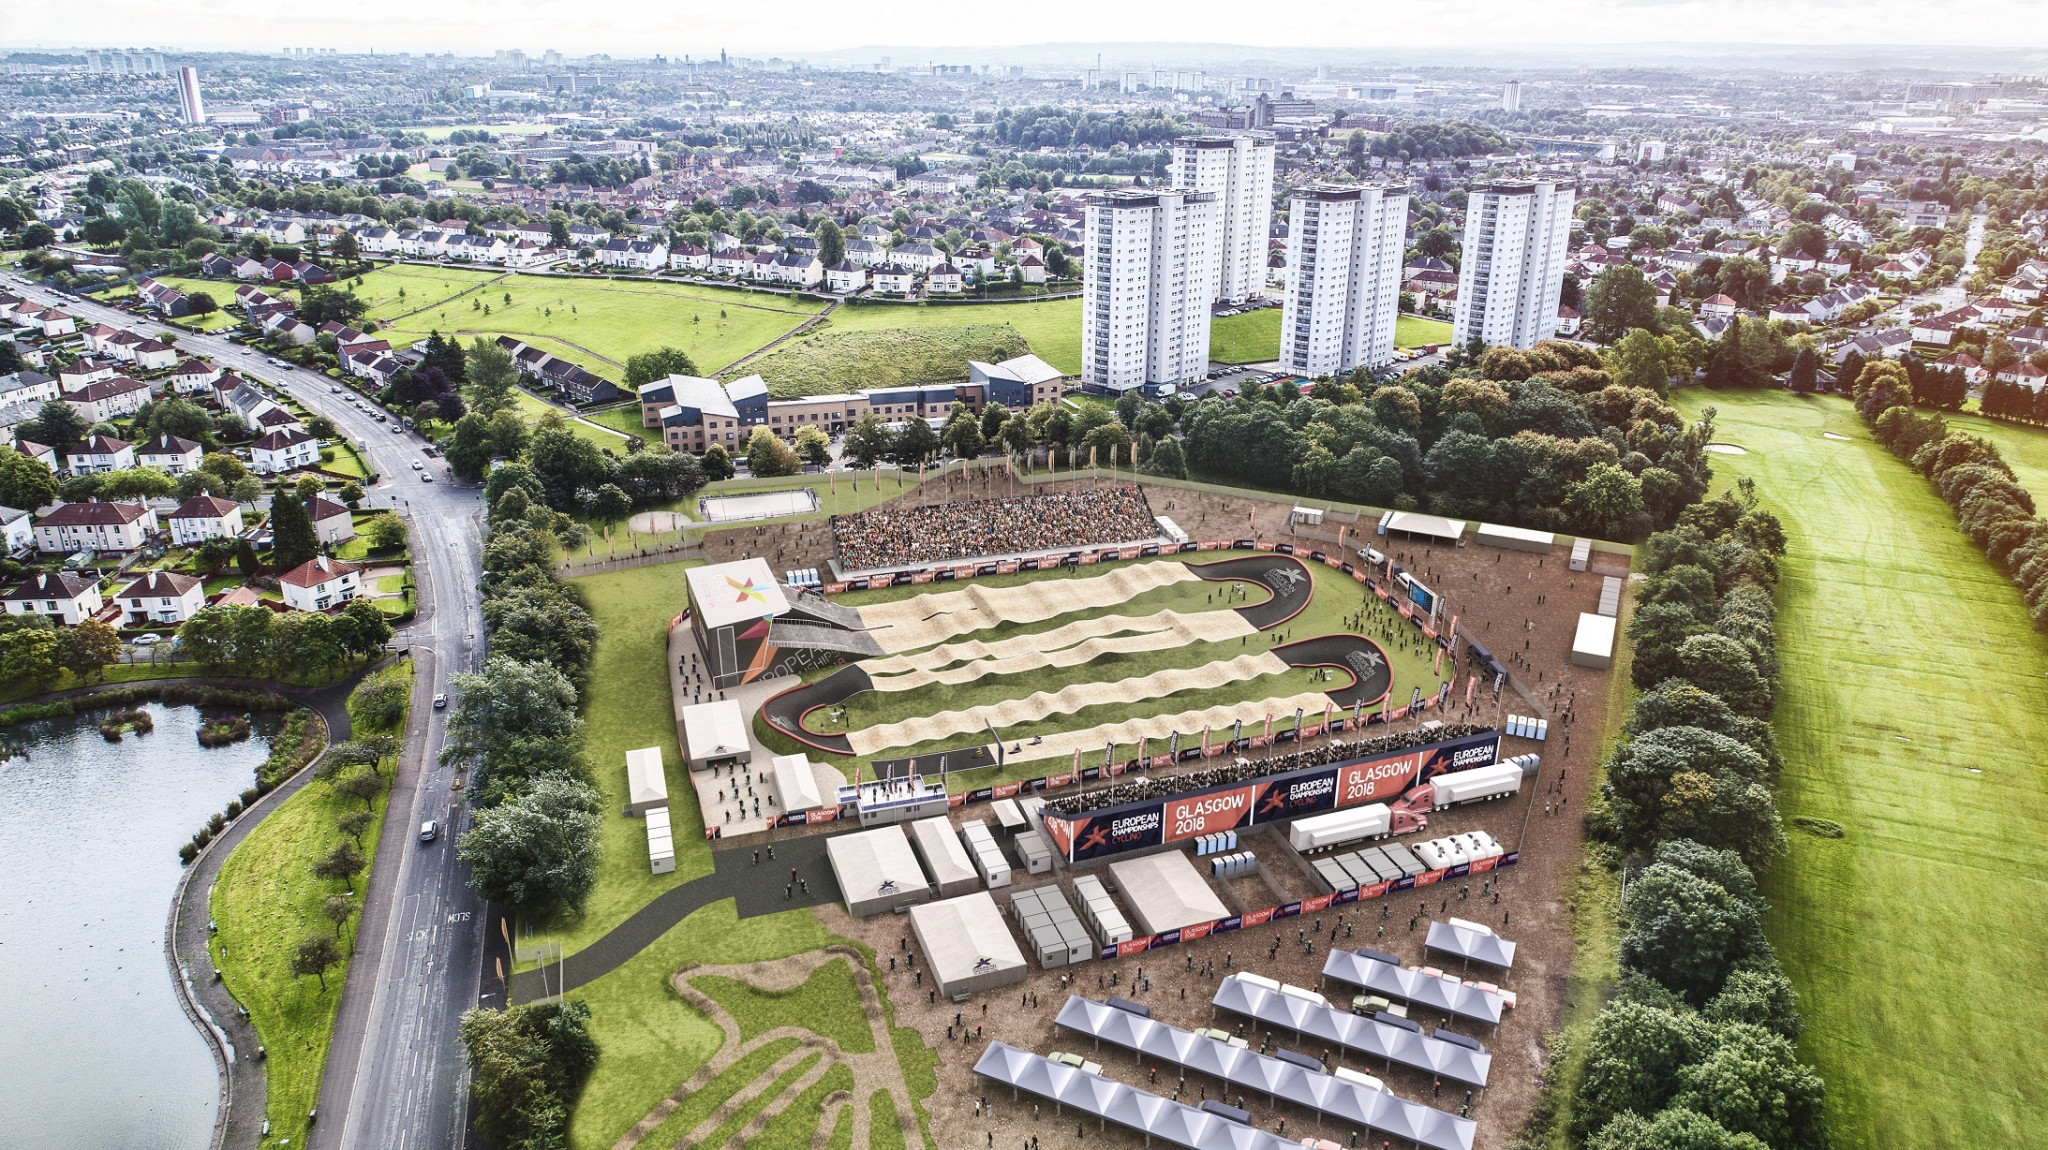 Construction work is underway on a new £3.7 million Olympic-standard BMX track being built in Glasgow prior to the 2018 European Championships ©Glasgow City Council